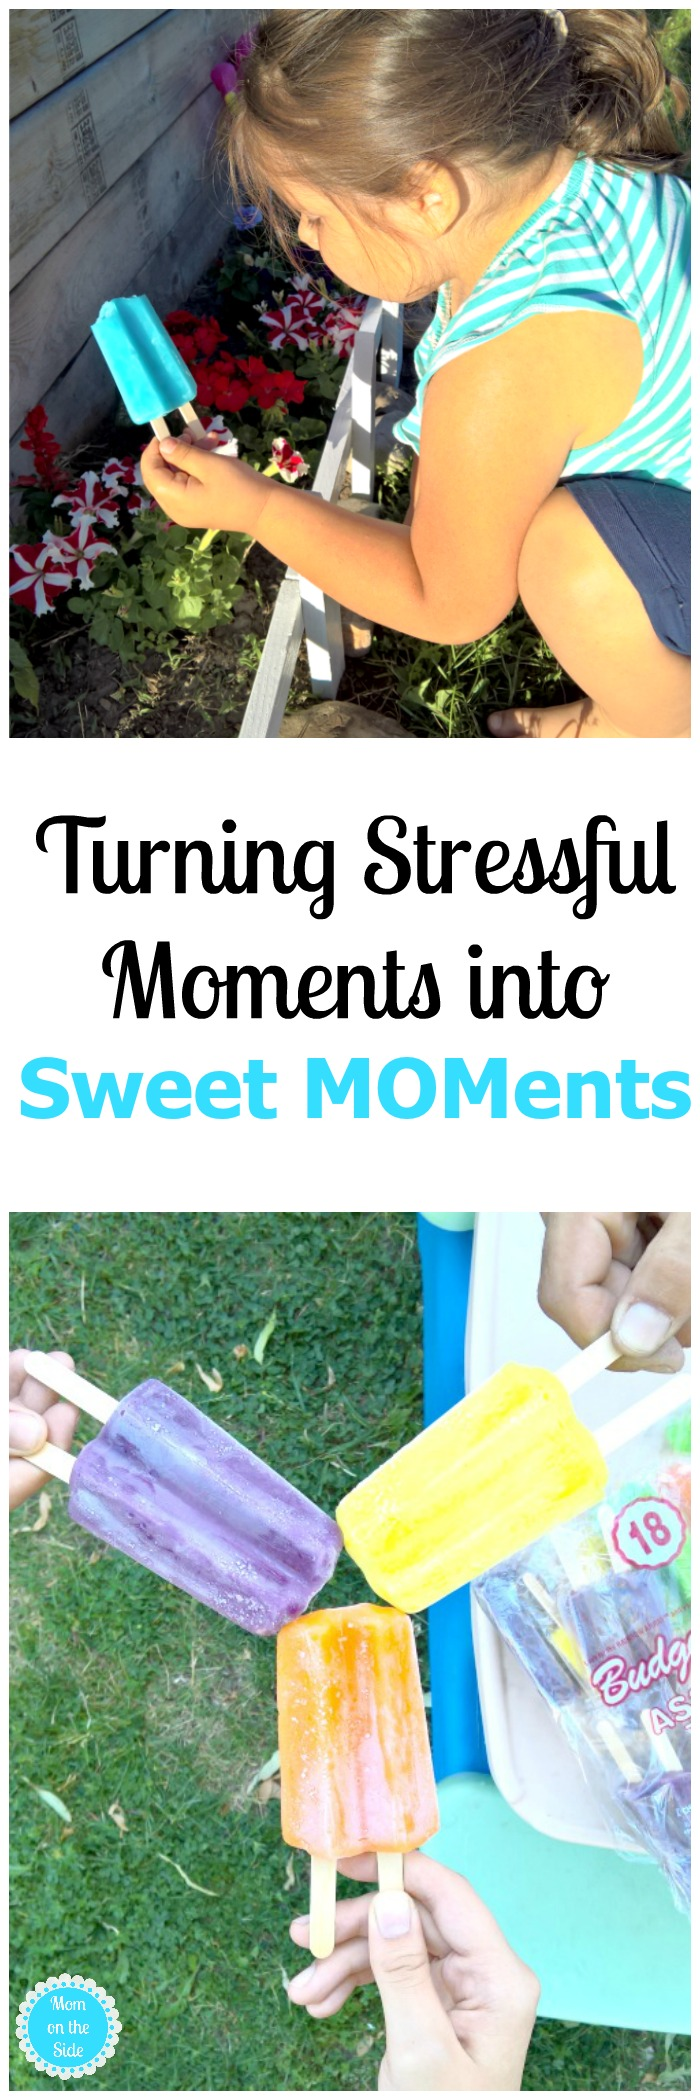 Stressful Moments turned Sweet MOMents